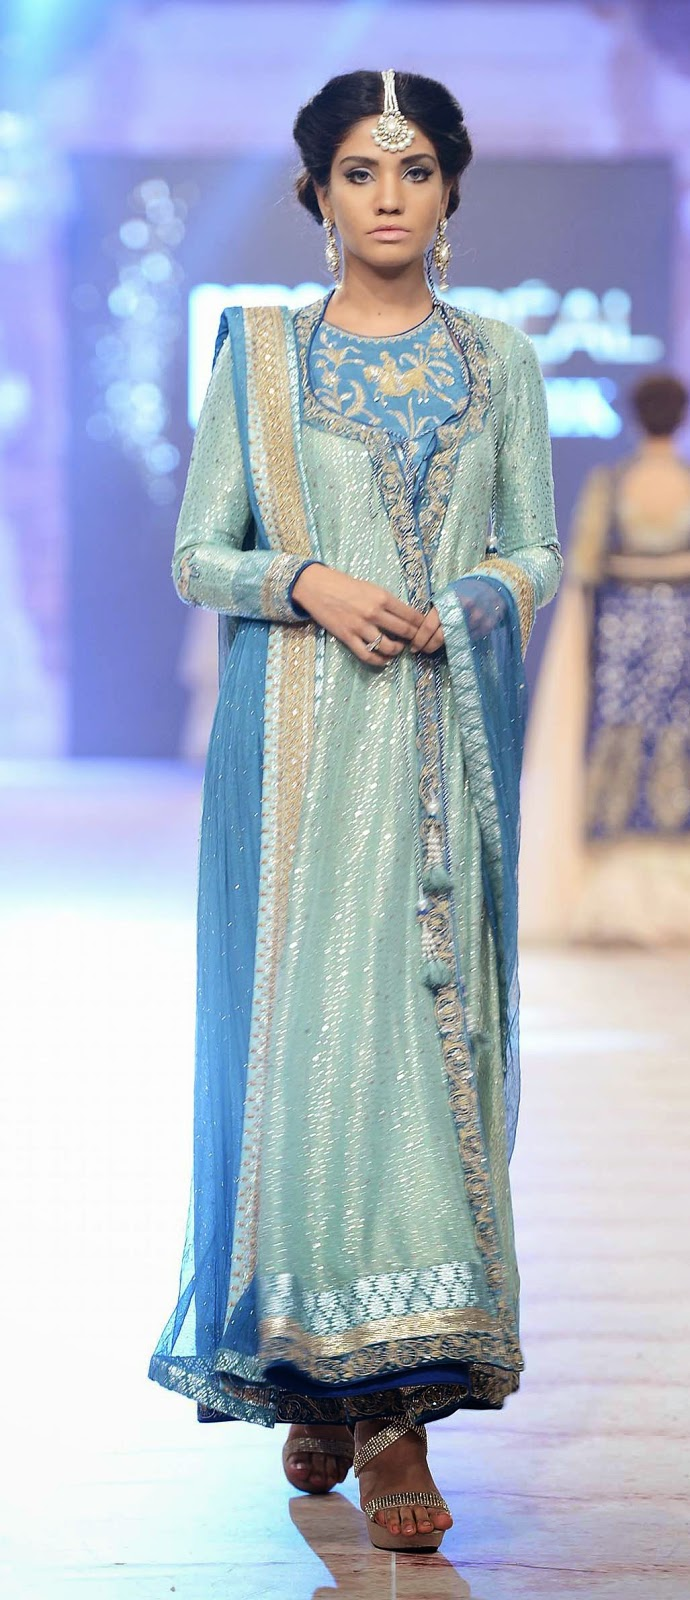 Delighted Pakistani Wedding Gowns Gallery - Wedding Ideas ...